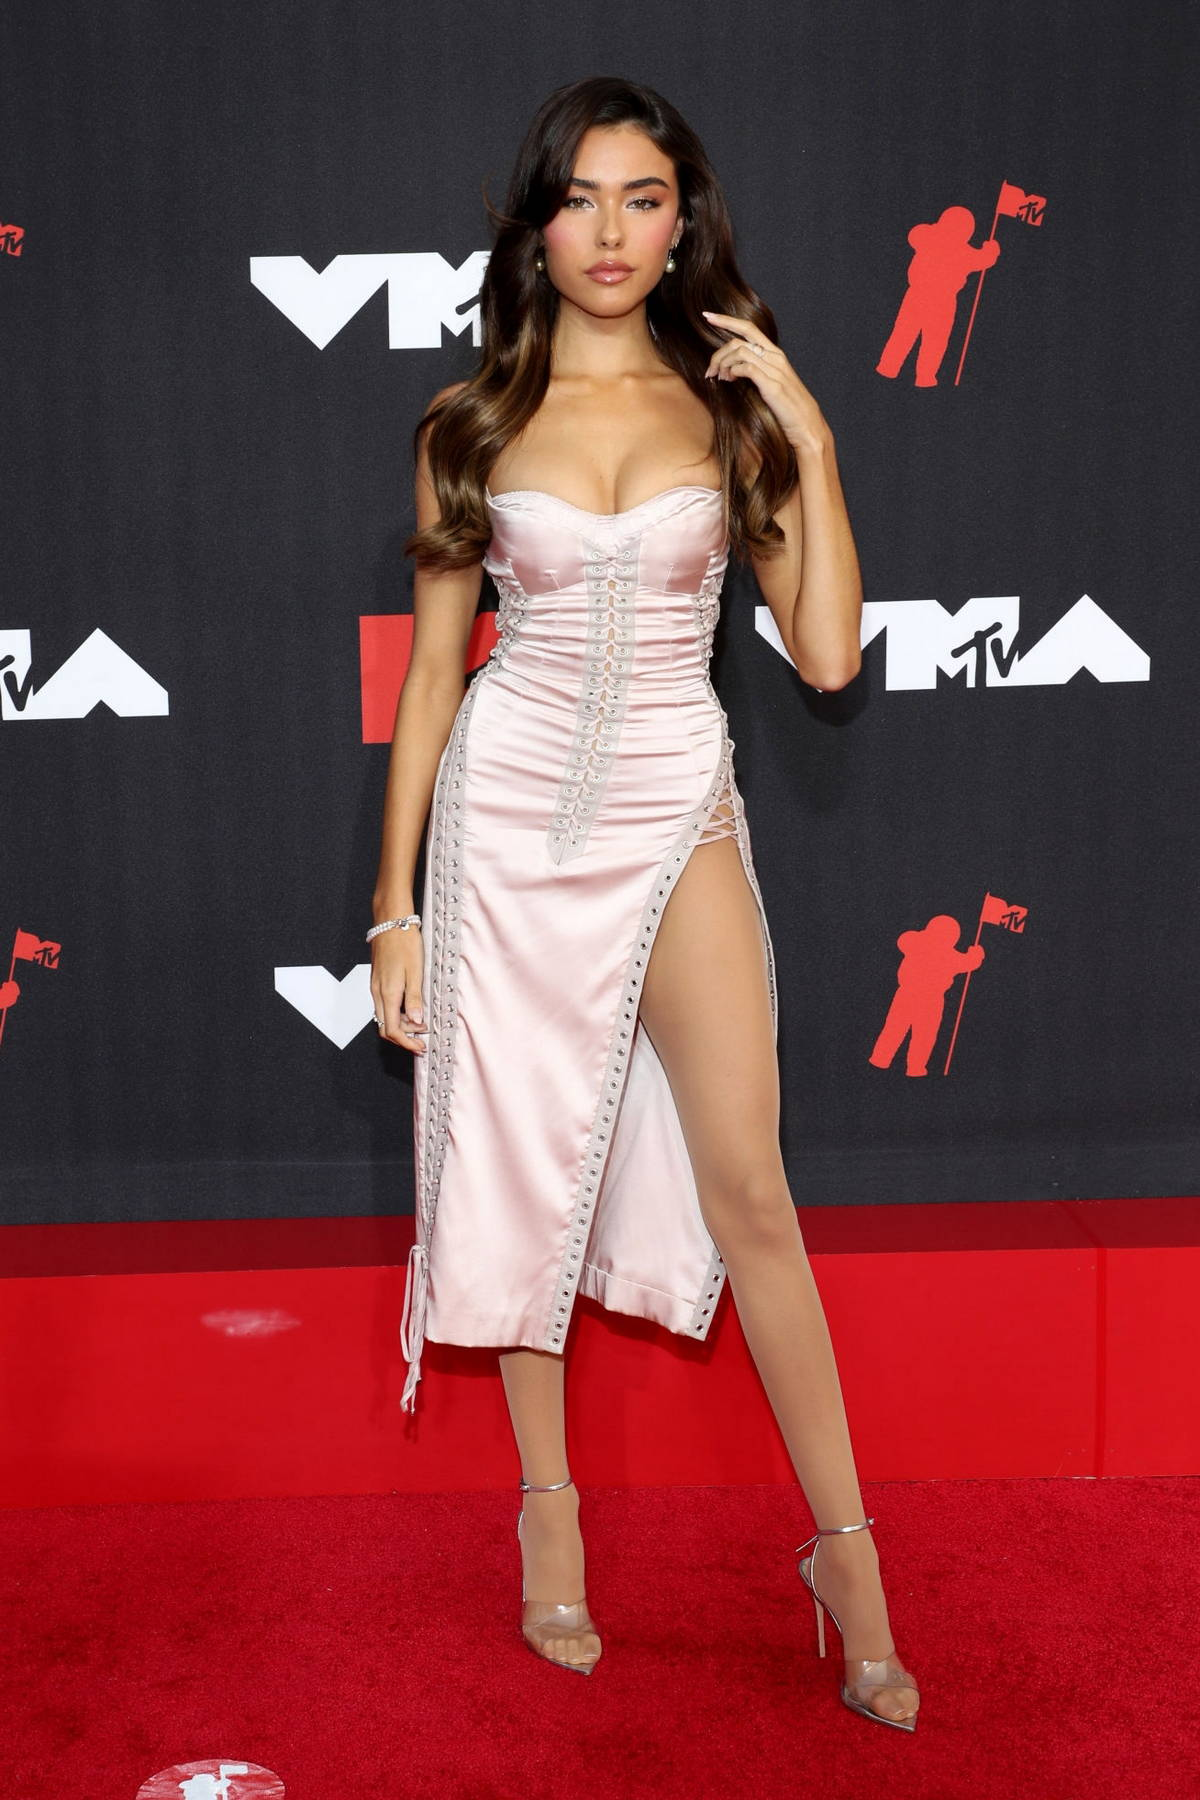 Madison Beer attends the 2021 MTV Video Music Awards at Barclays Center in Brooklyn, New York City